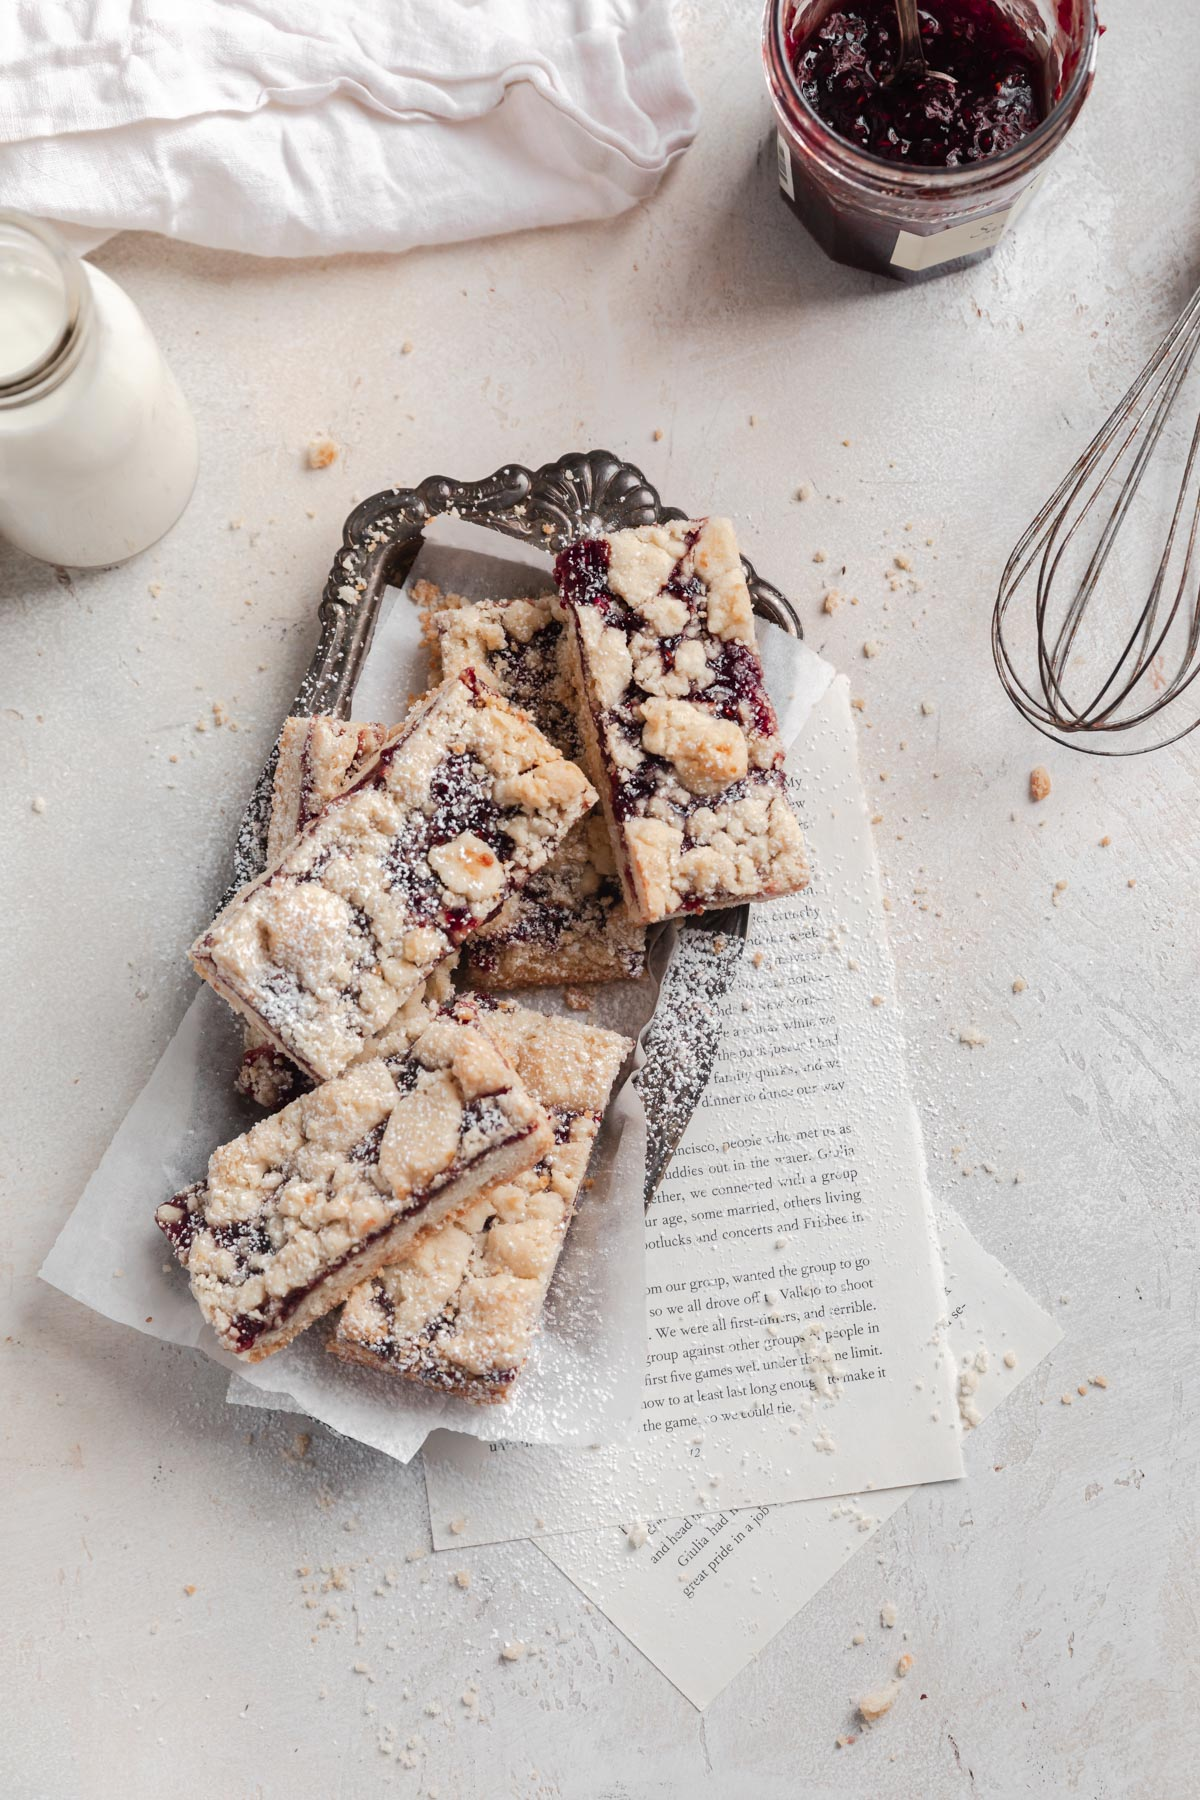 jam bars with shortbread crumble